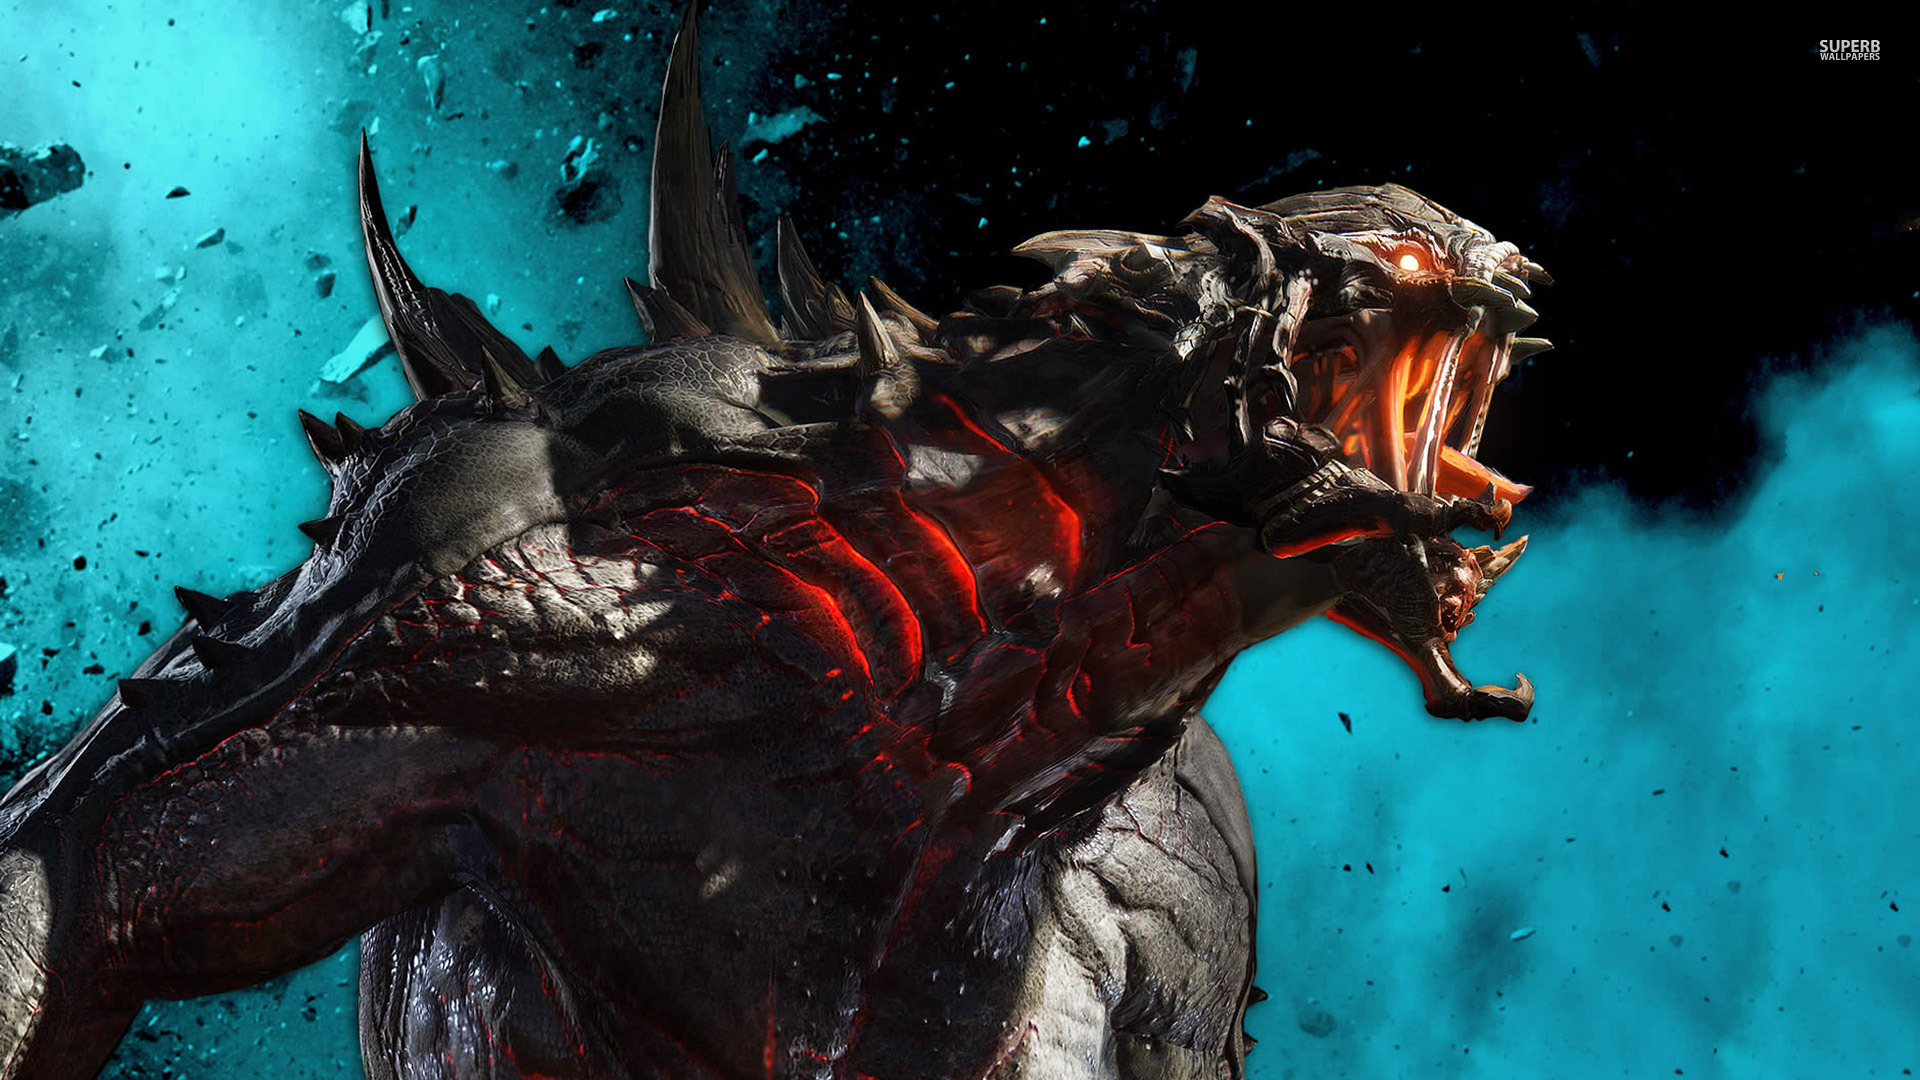 Evolve PC Game for Windows 81 All for Windows 10 1920x1080